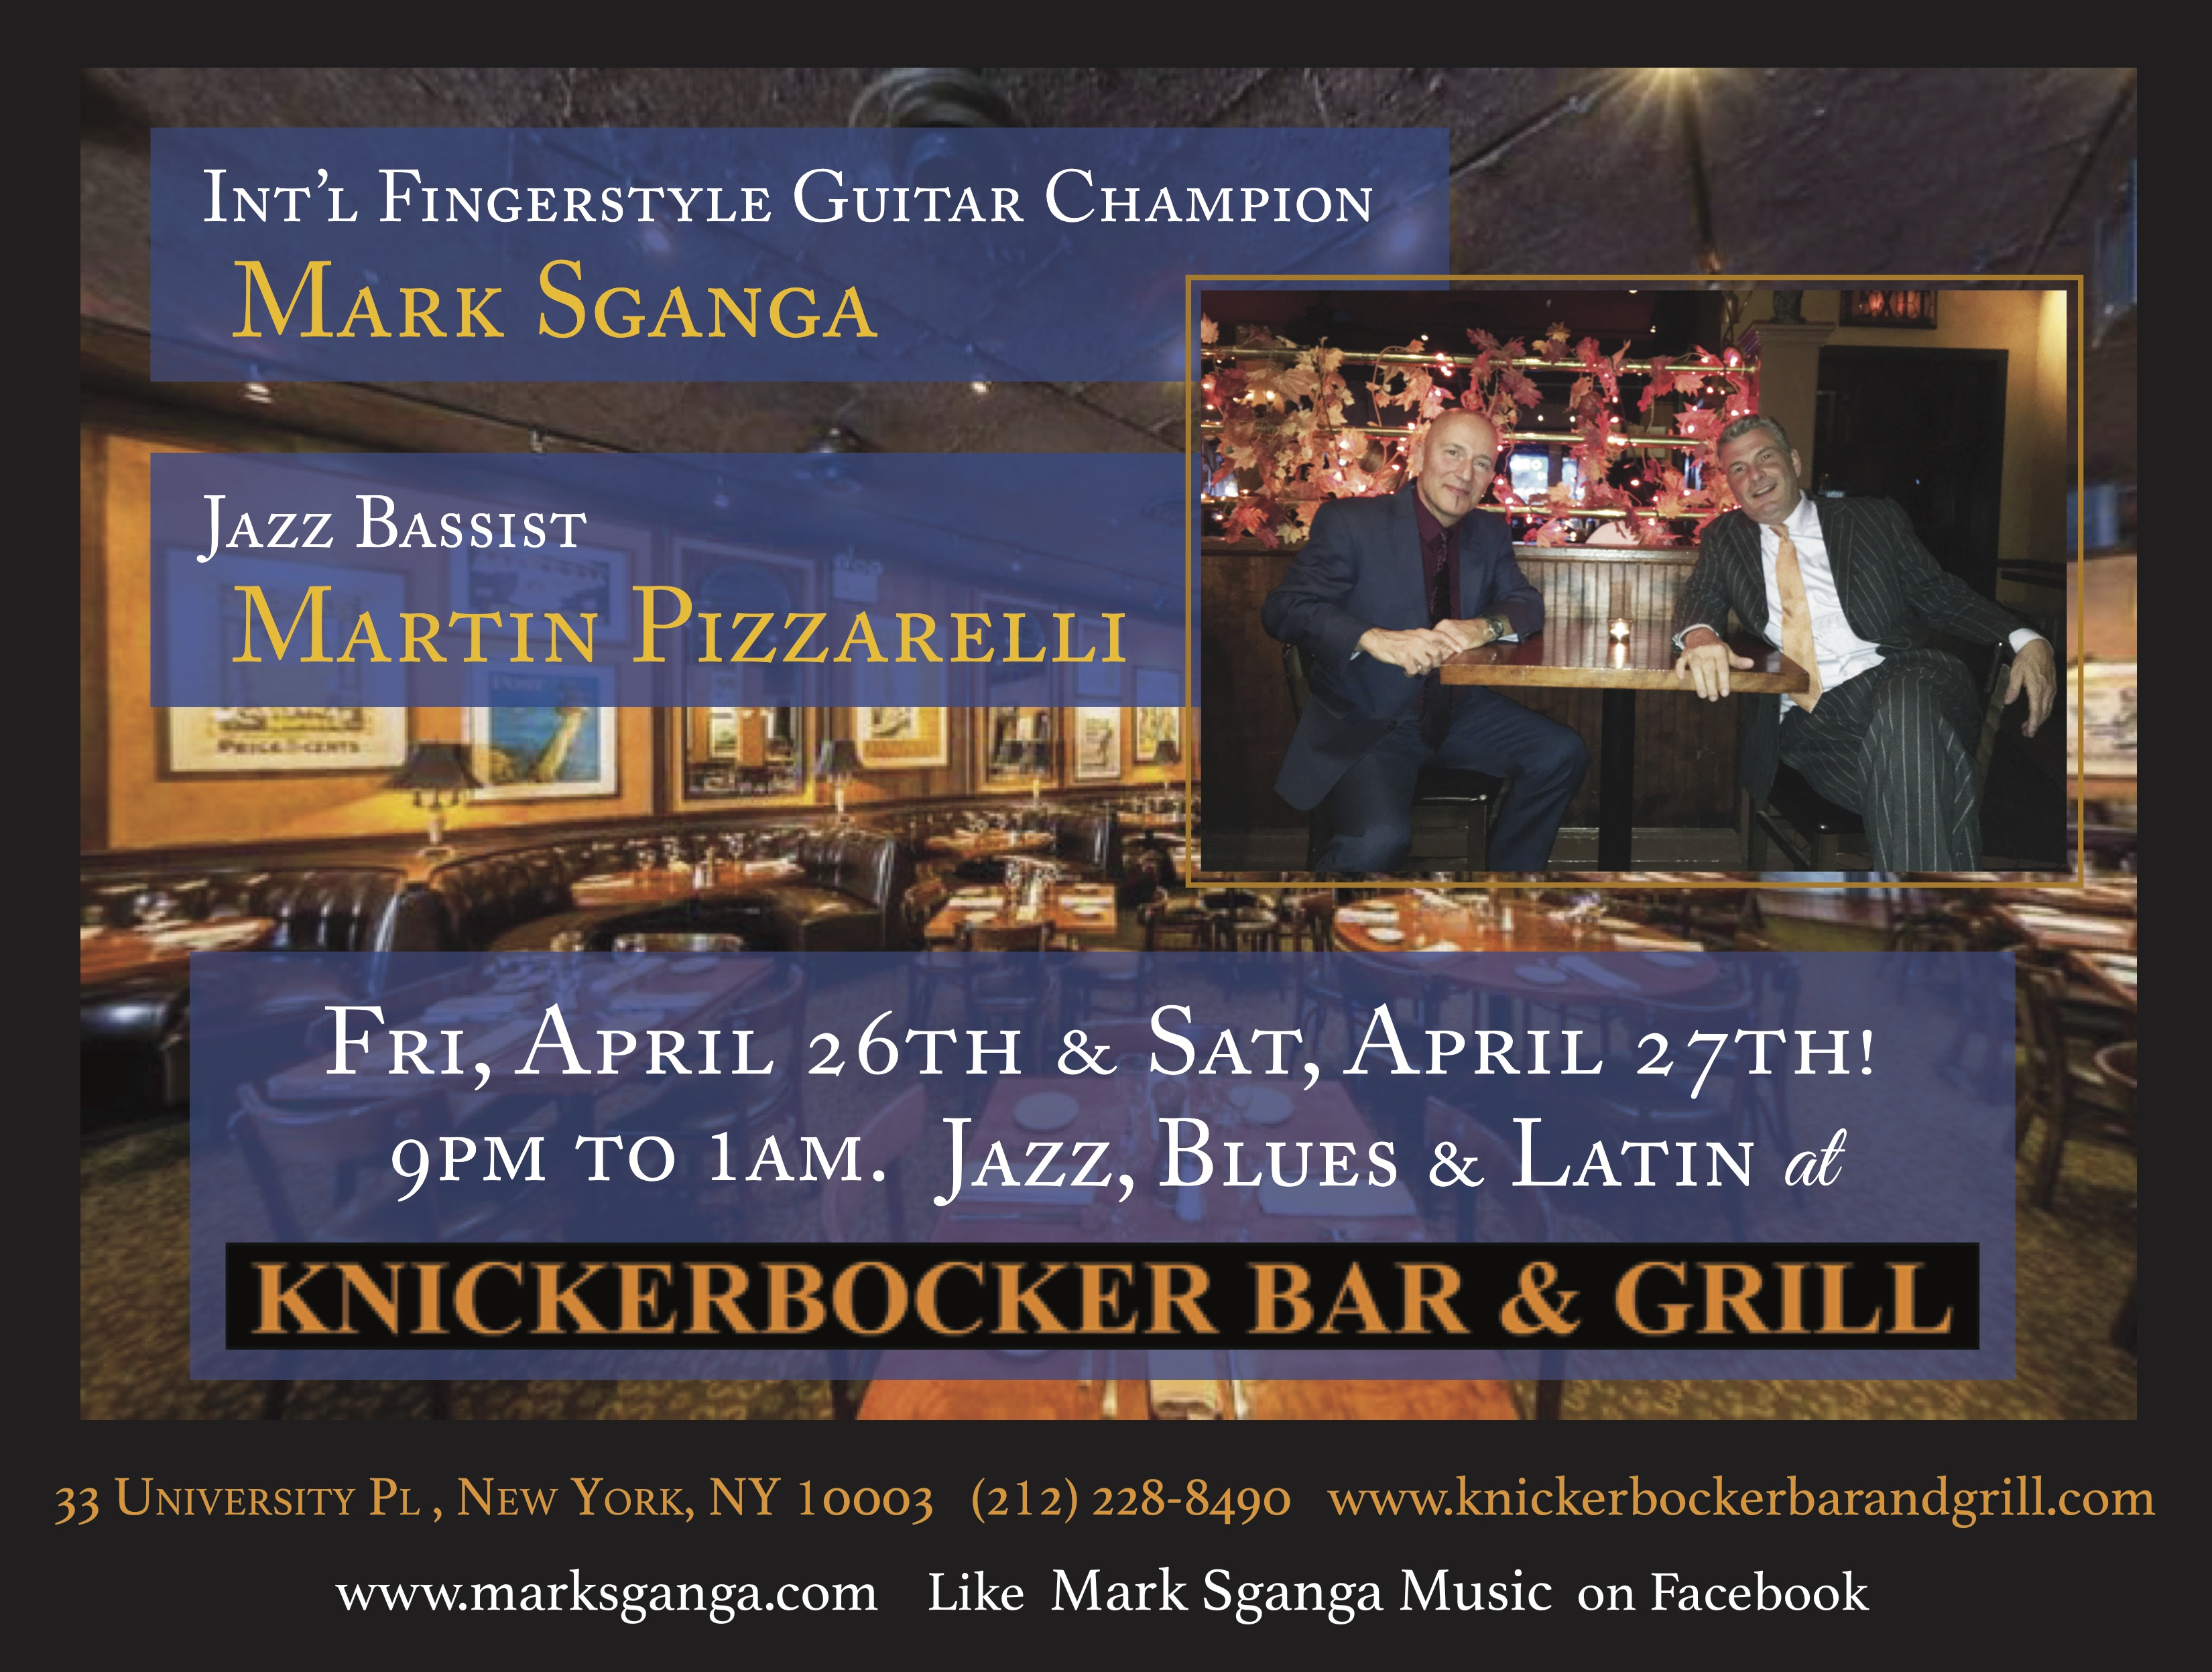 Sganga/pizzarelli: Jazz, Blues & Brazilian!